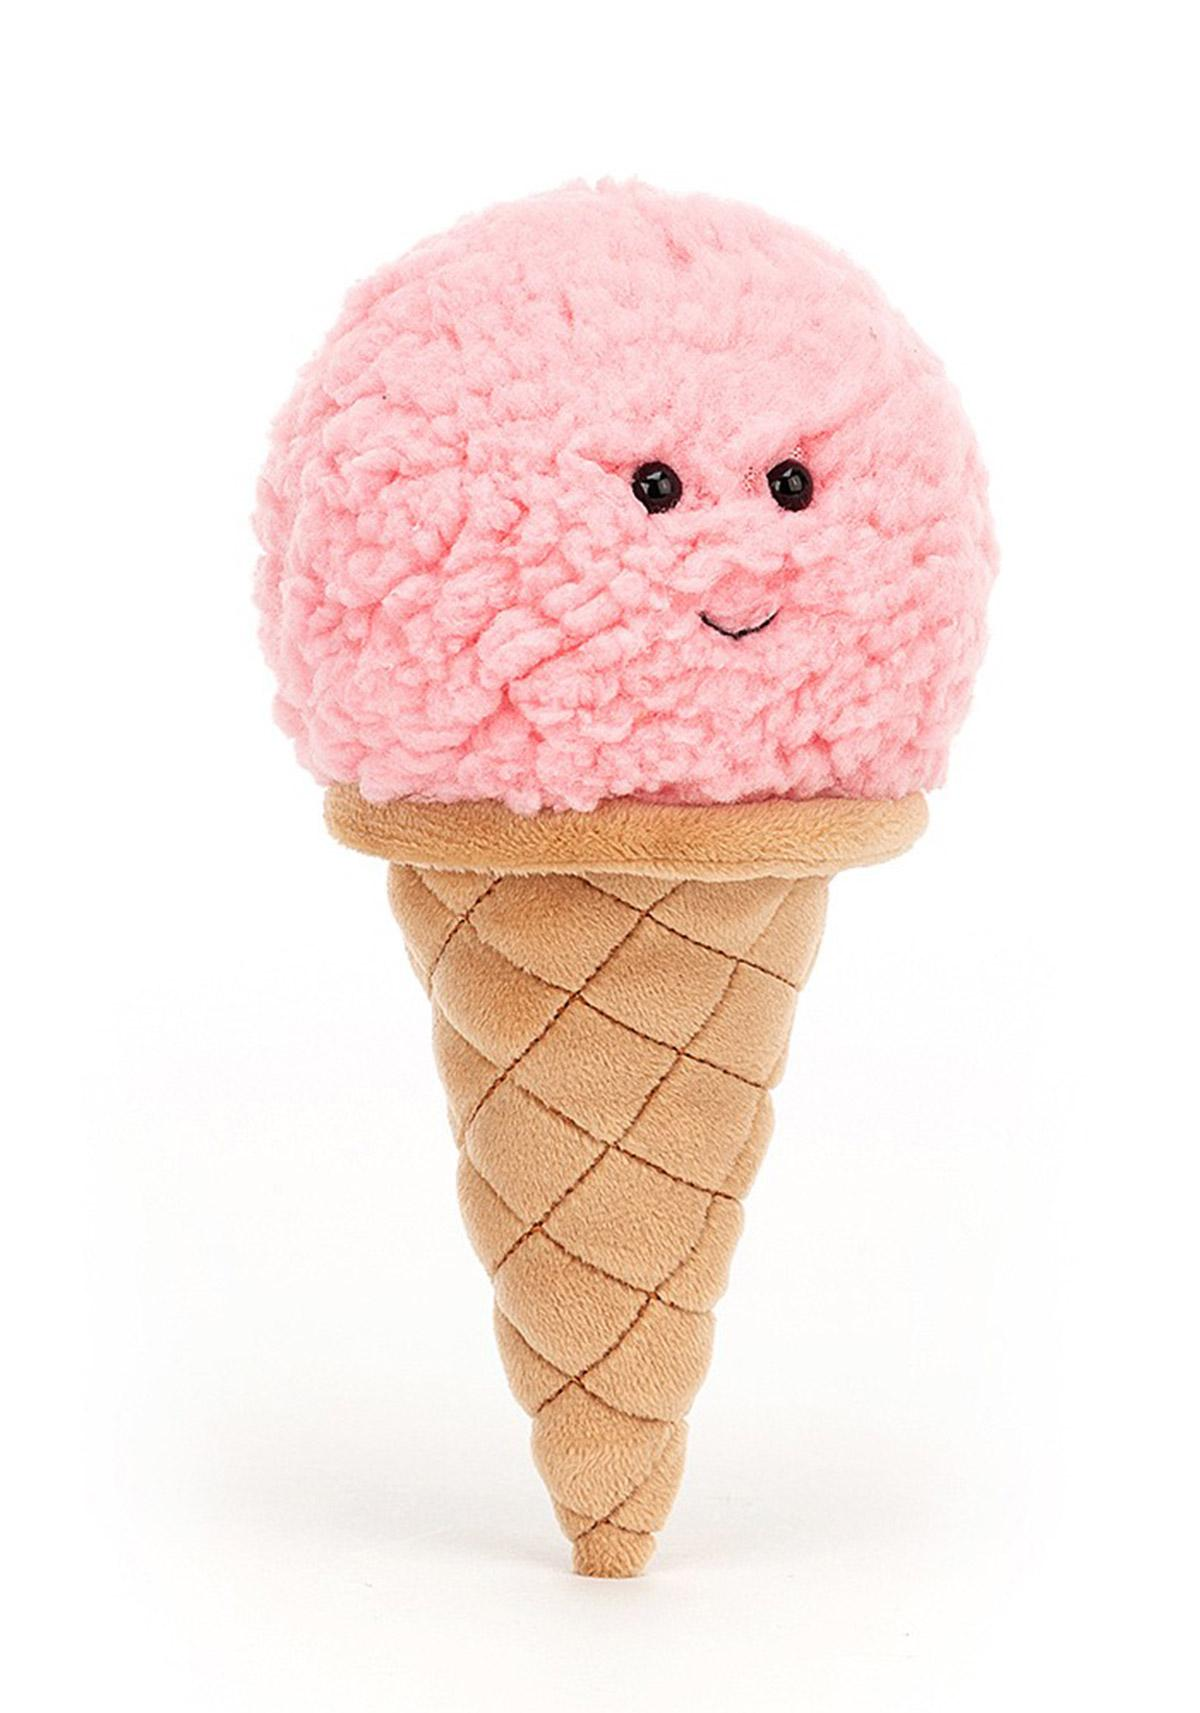 Jellycat Irresistable Ice Cream strawberry